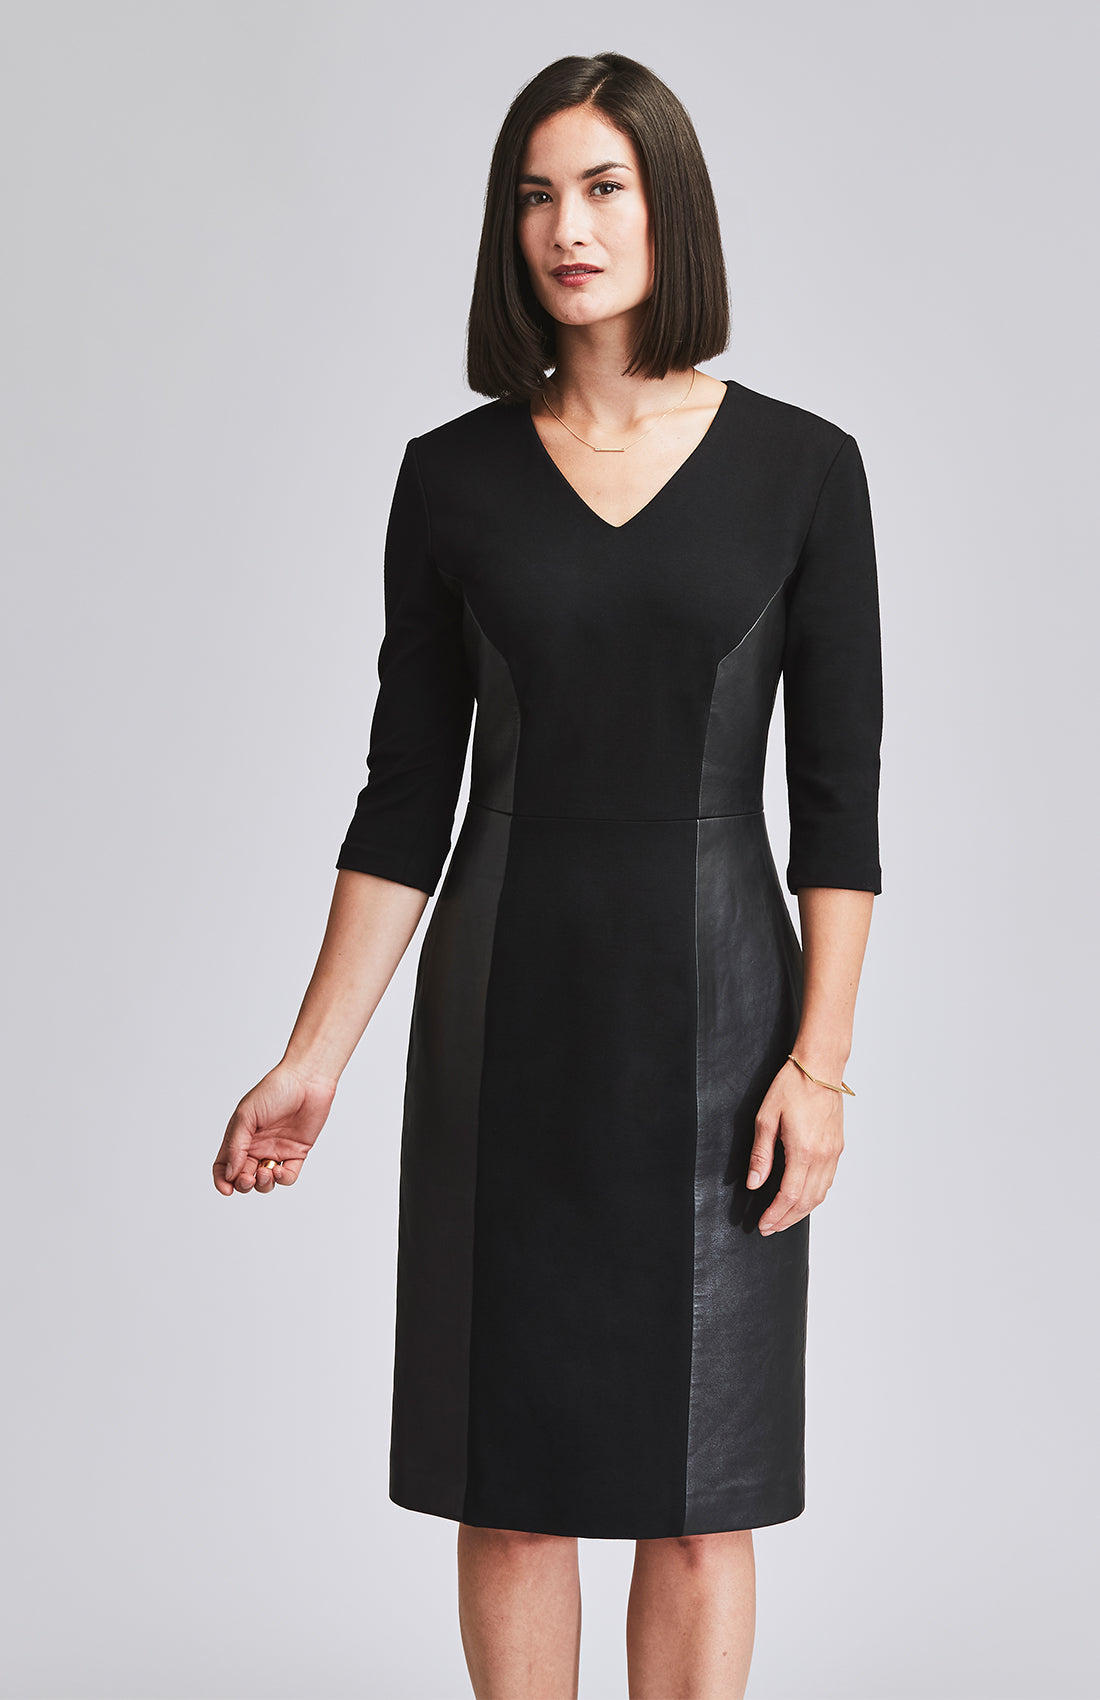 CONVINCED LEATHER PANEL AFTER-WORK DRESS